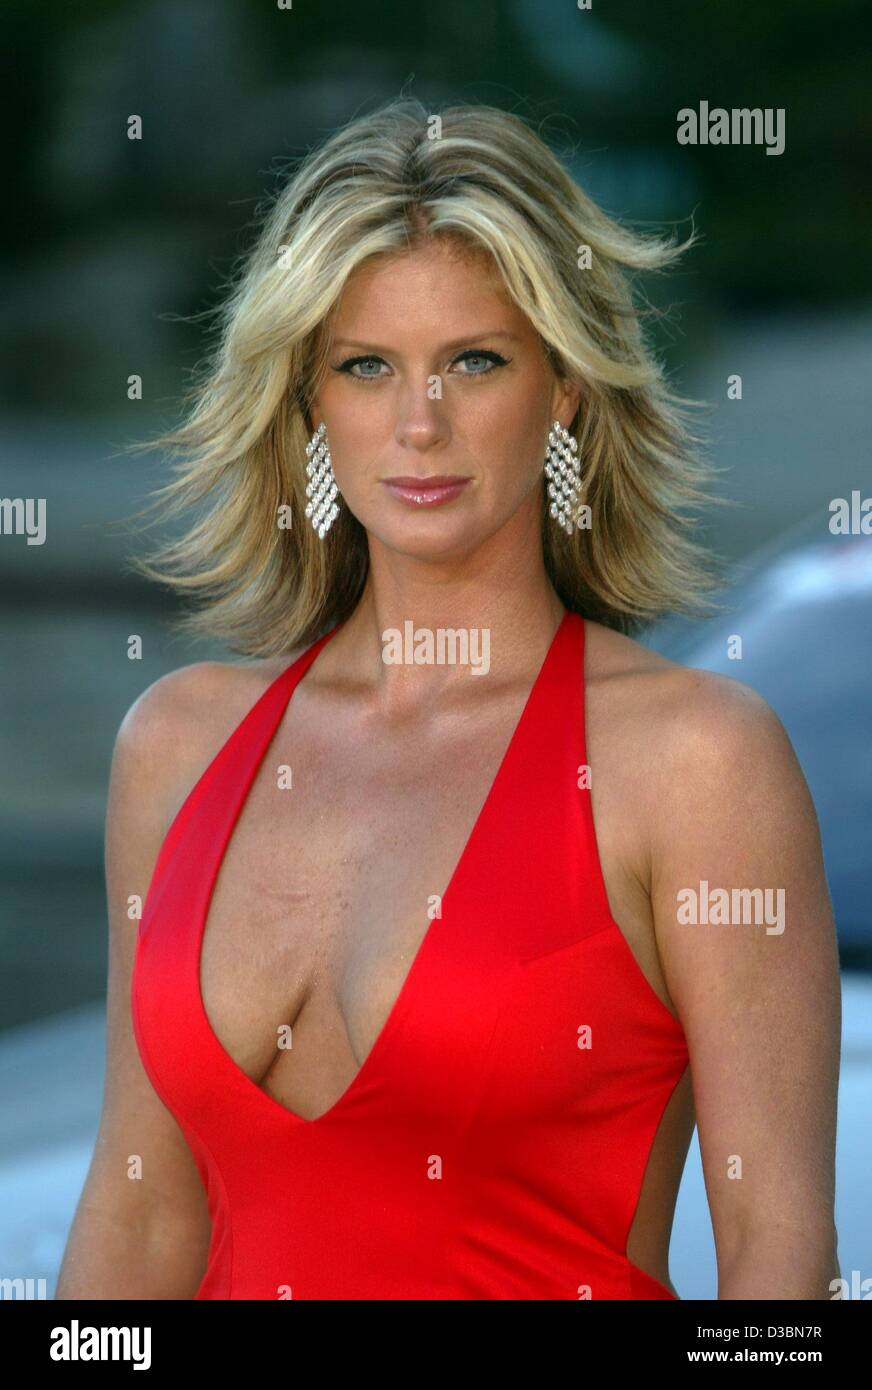 Ass Fotos Rachel Hunter naked photo 2017